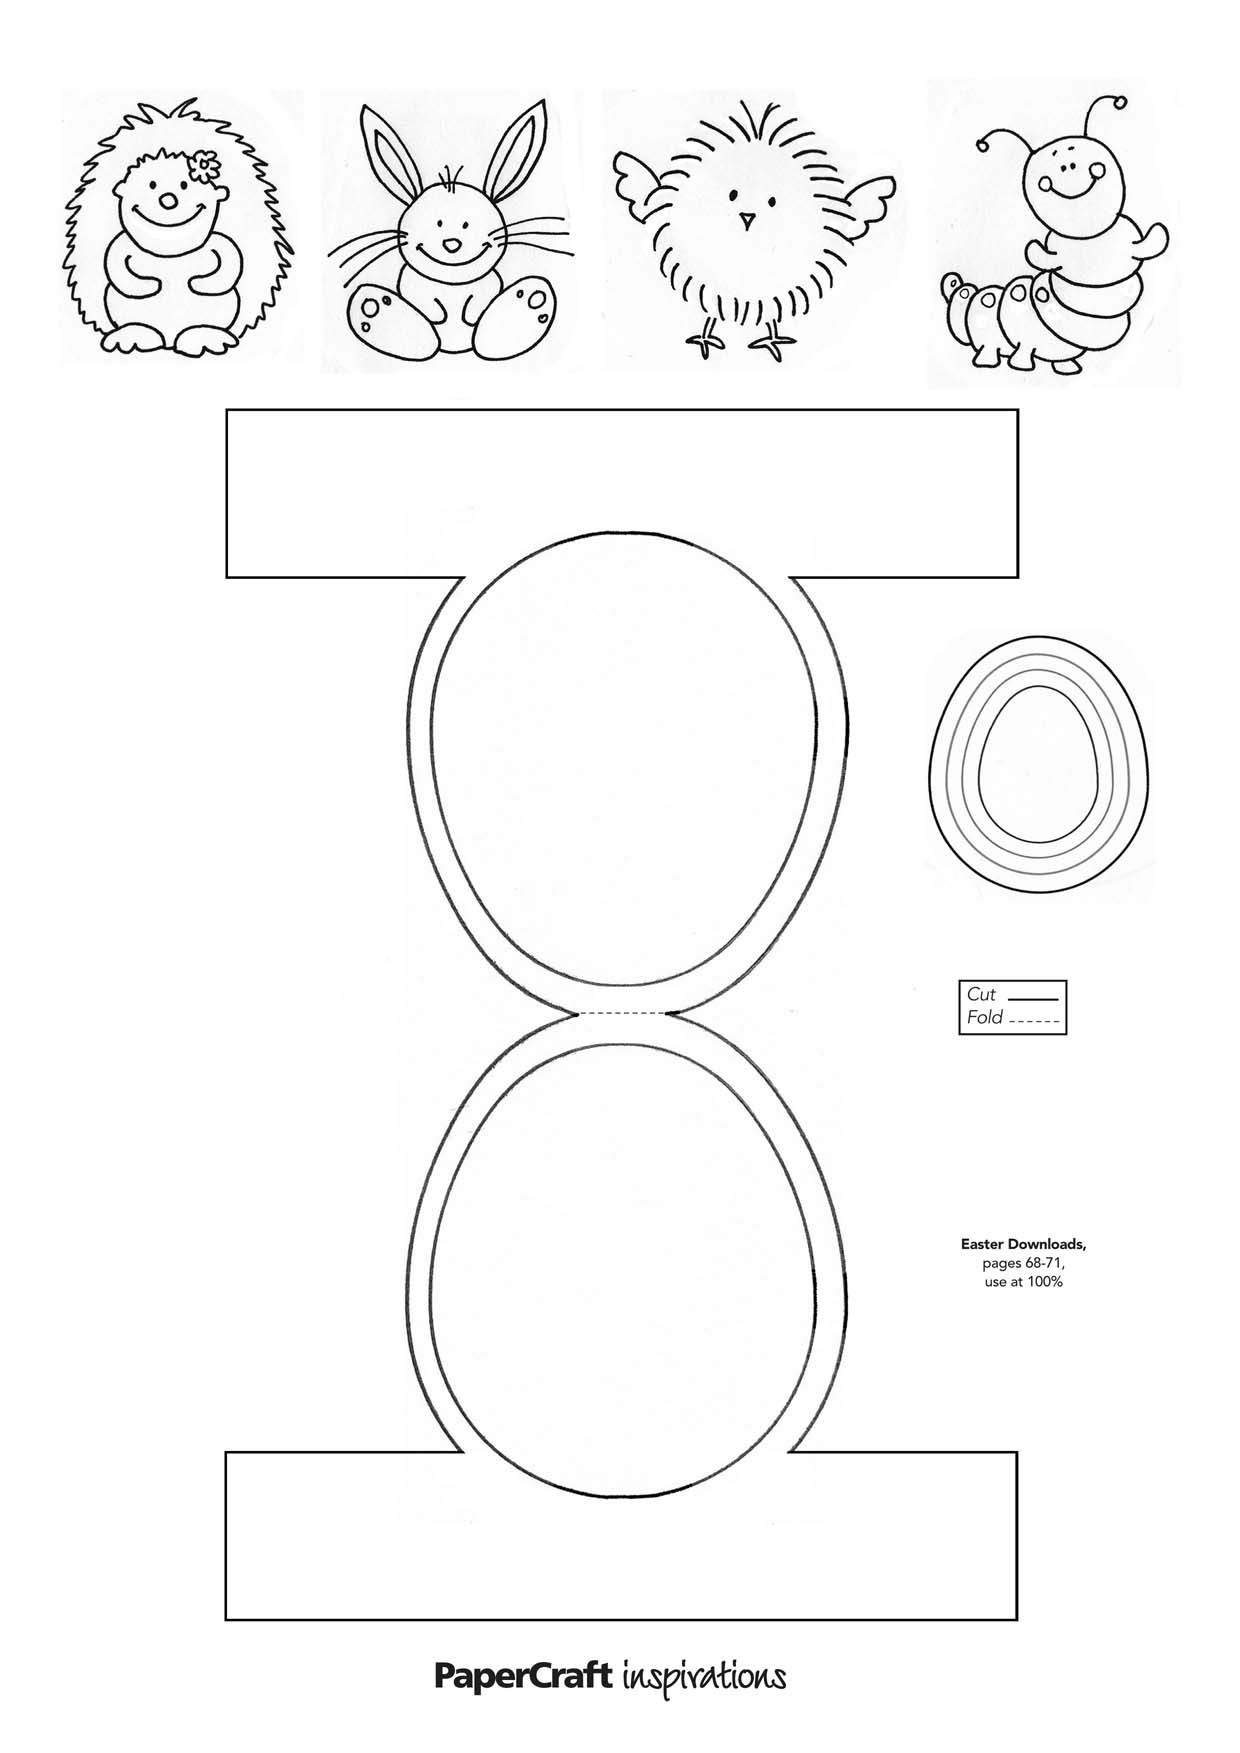 Paper Crafts Templates